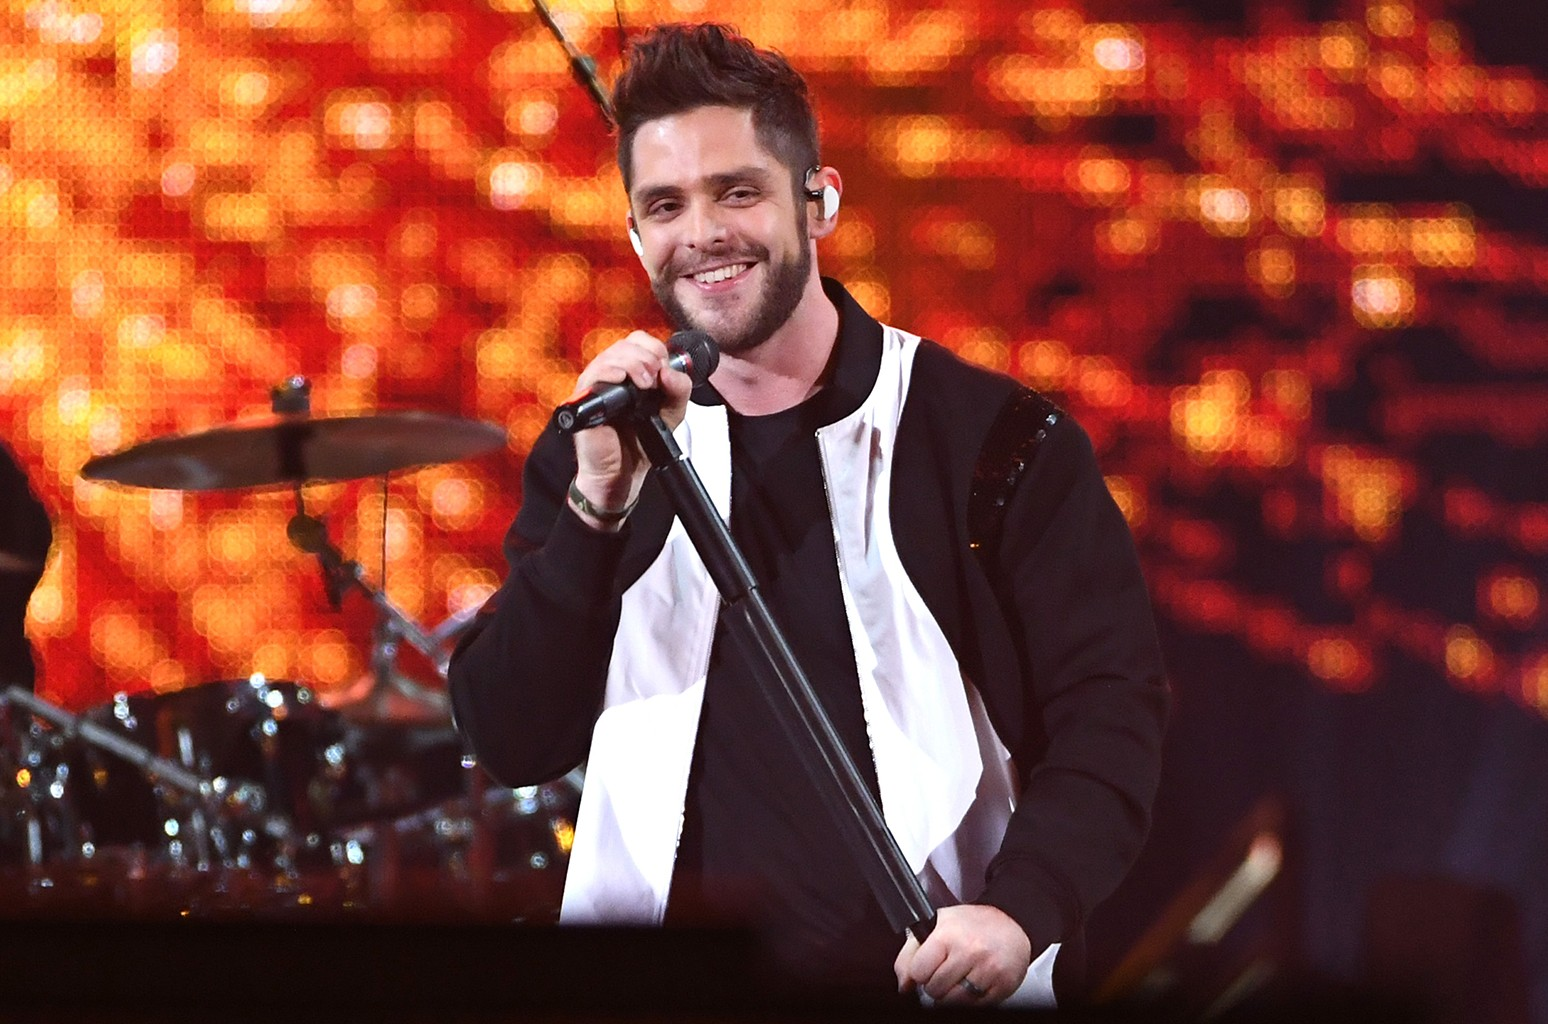 Thomas Rhett performs onstage at the 2017 iHeartRadio Music Awards which broadcast live on Turner's TBS, TNT, and truTV at The Forum on March 5, 2017 in Inglewood, Calif.